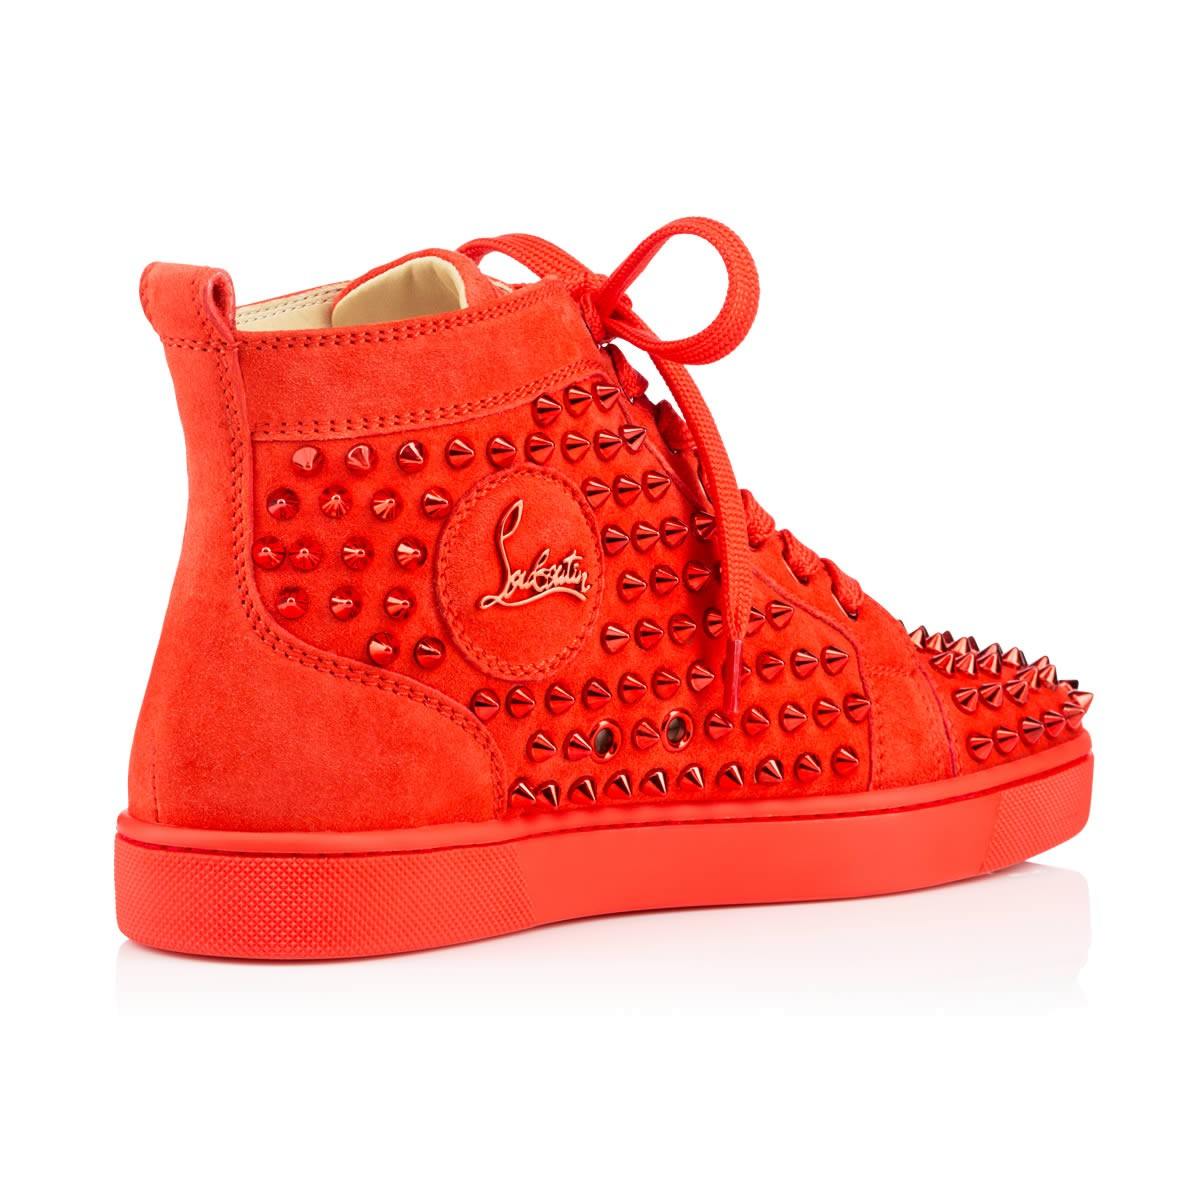 christian louboutin louis spikes red